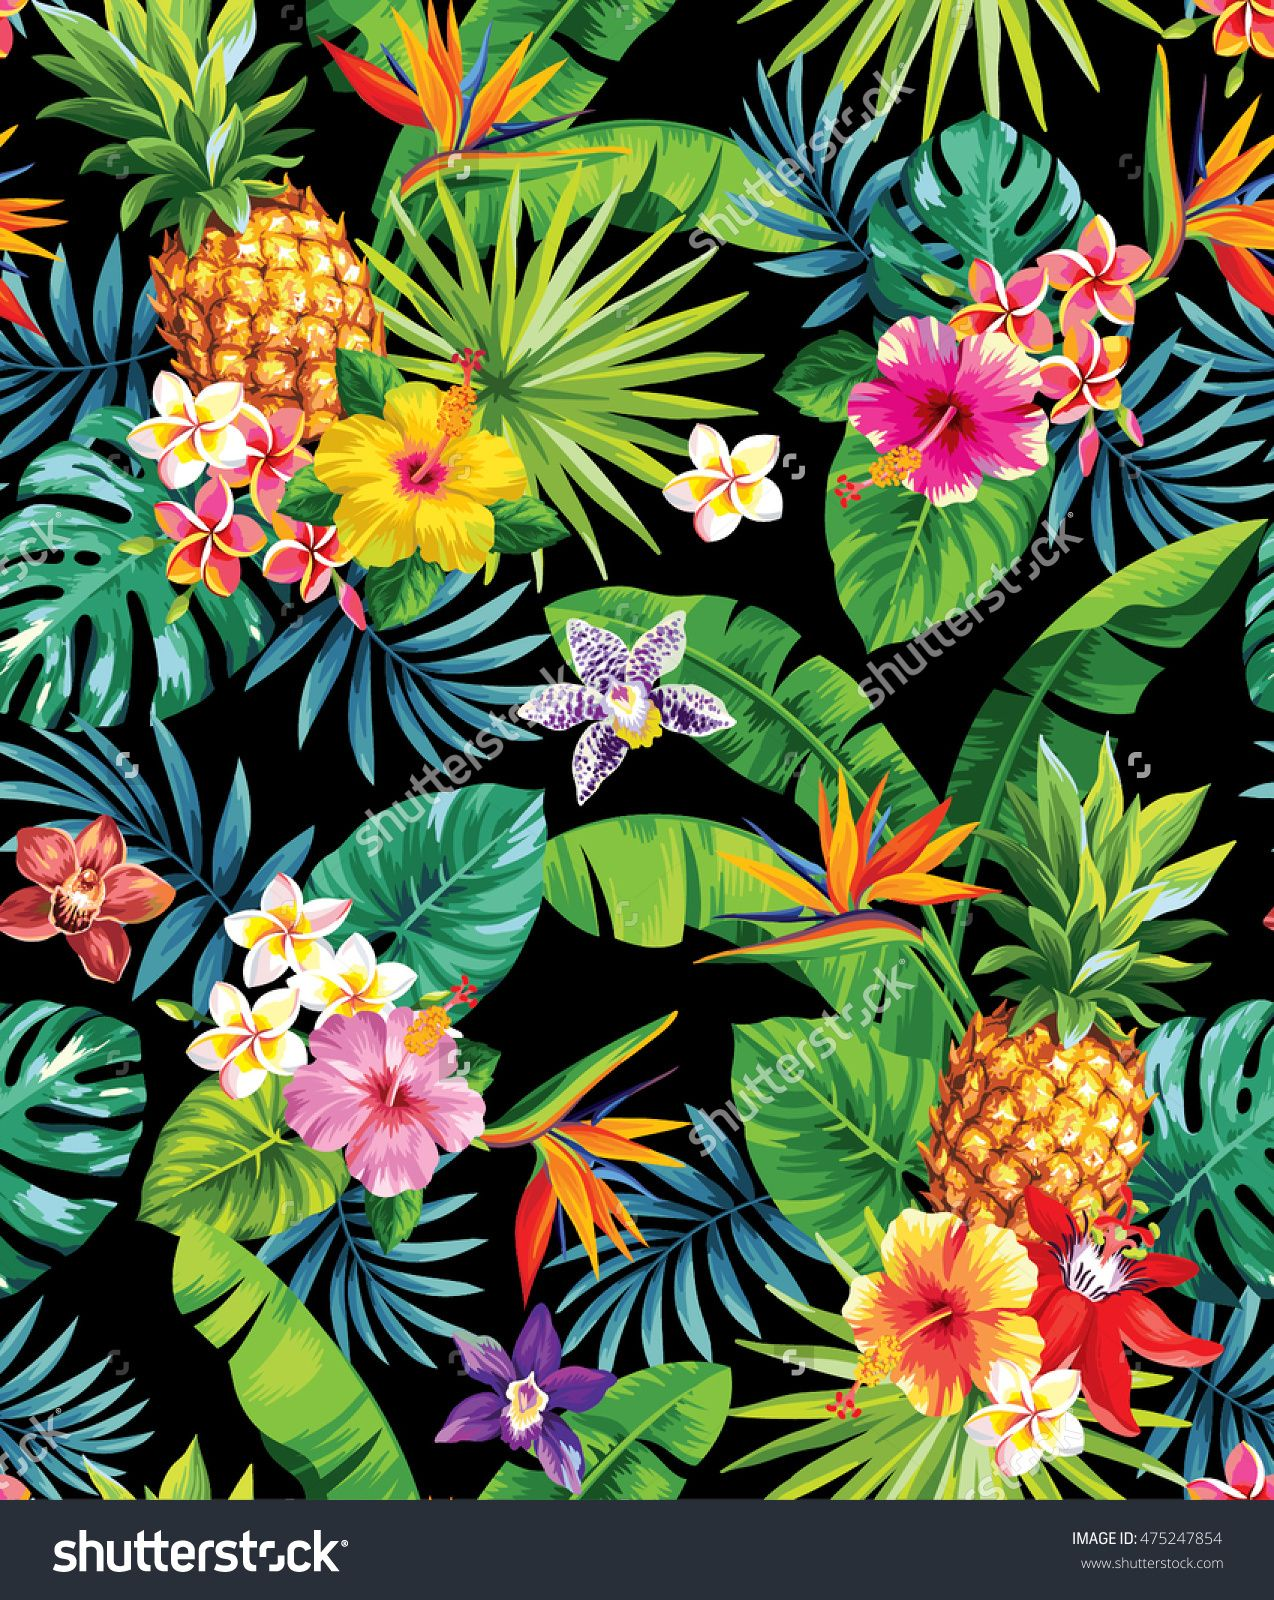 Seamless tropical pattern with pineapples palm leaves and flowers